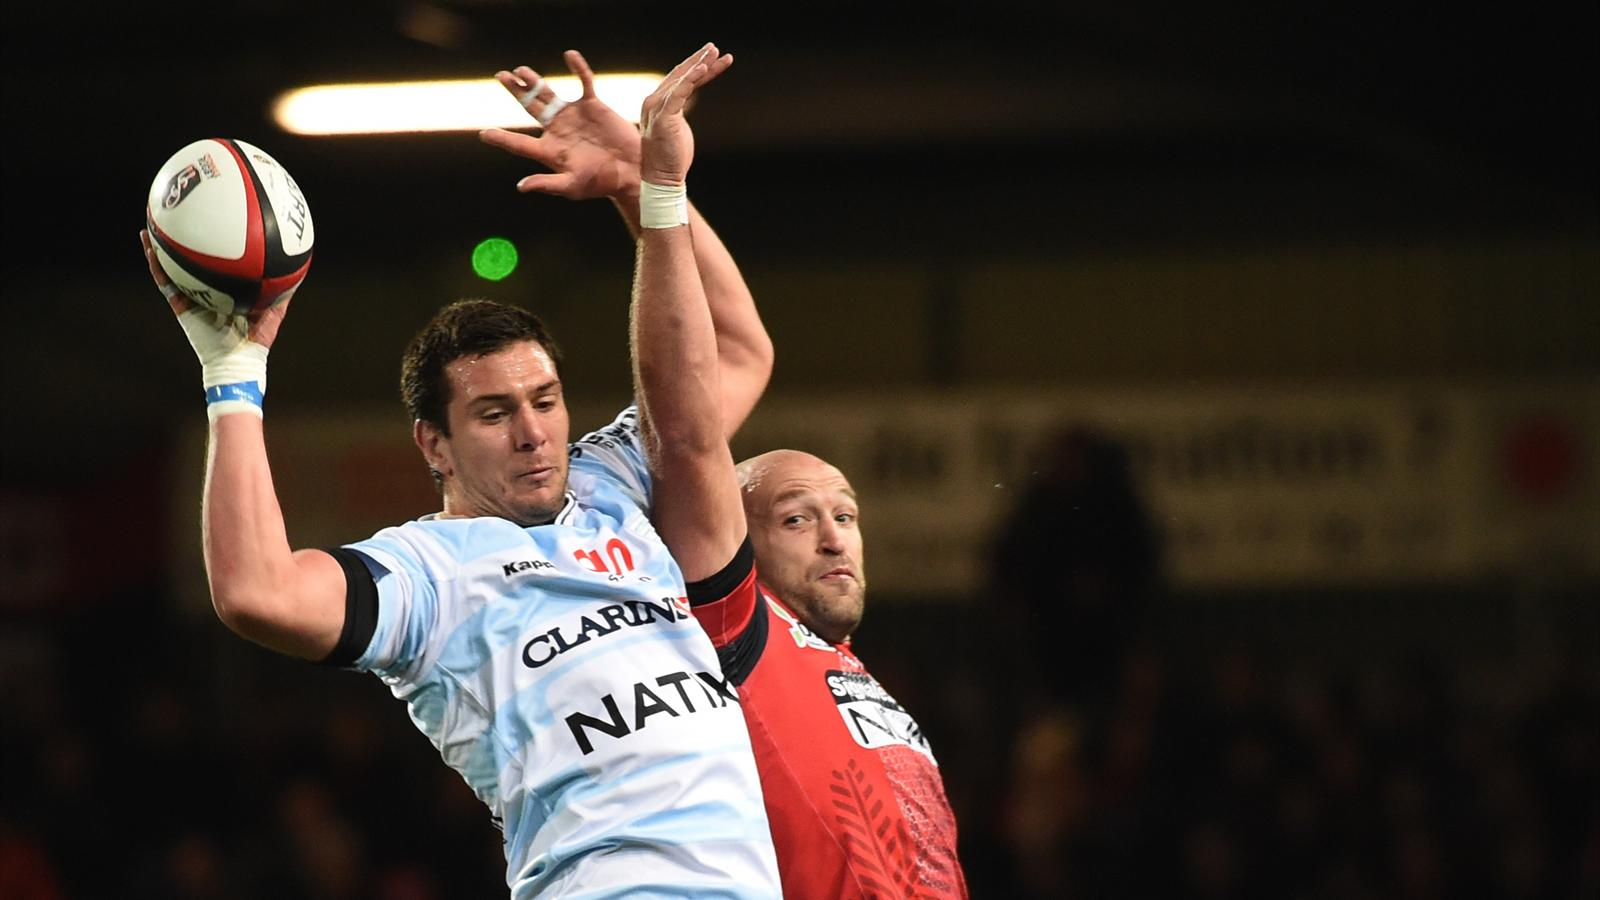 Manuel Carizza (Racing) face à Oyonnax - 16 octobre 2015